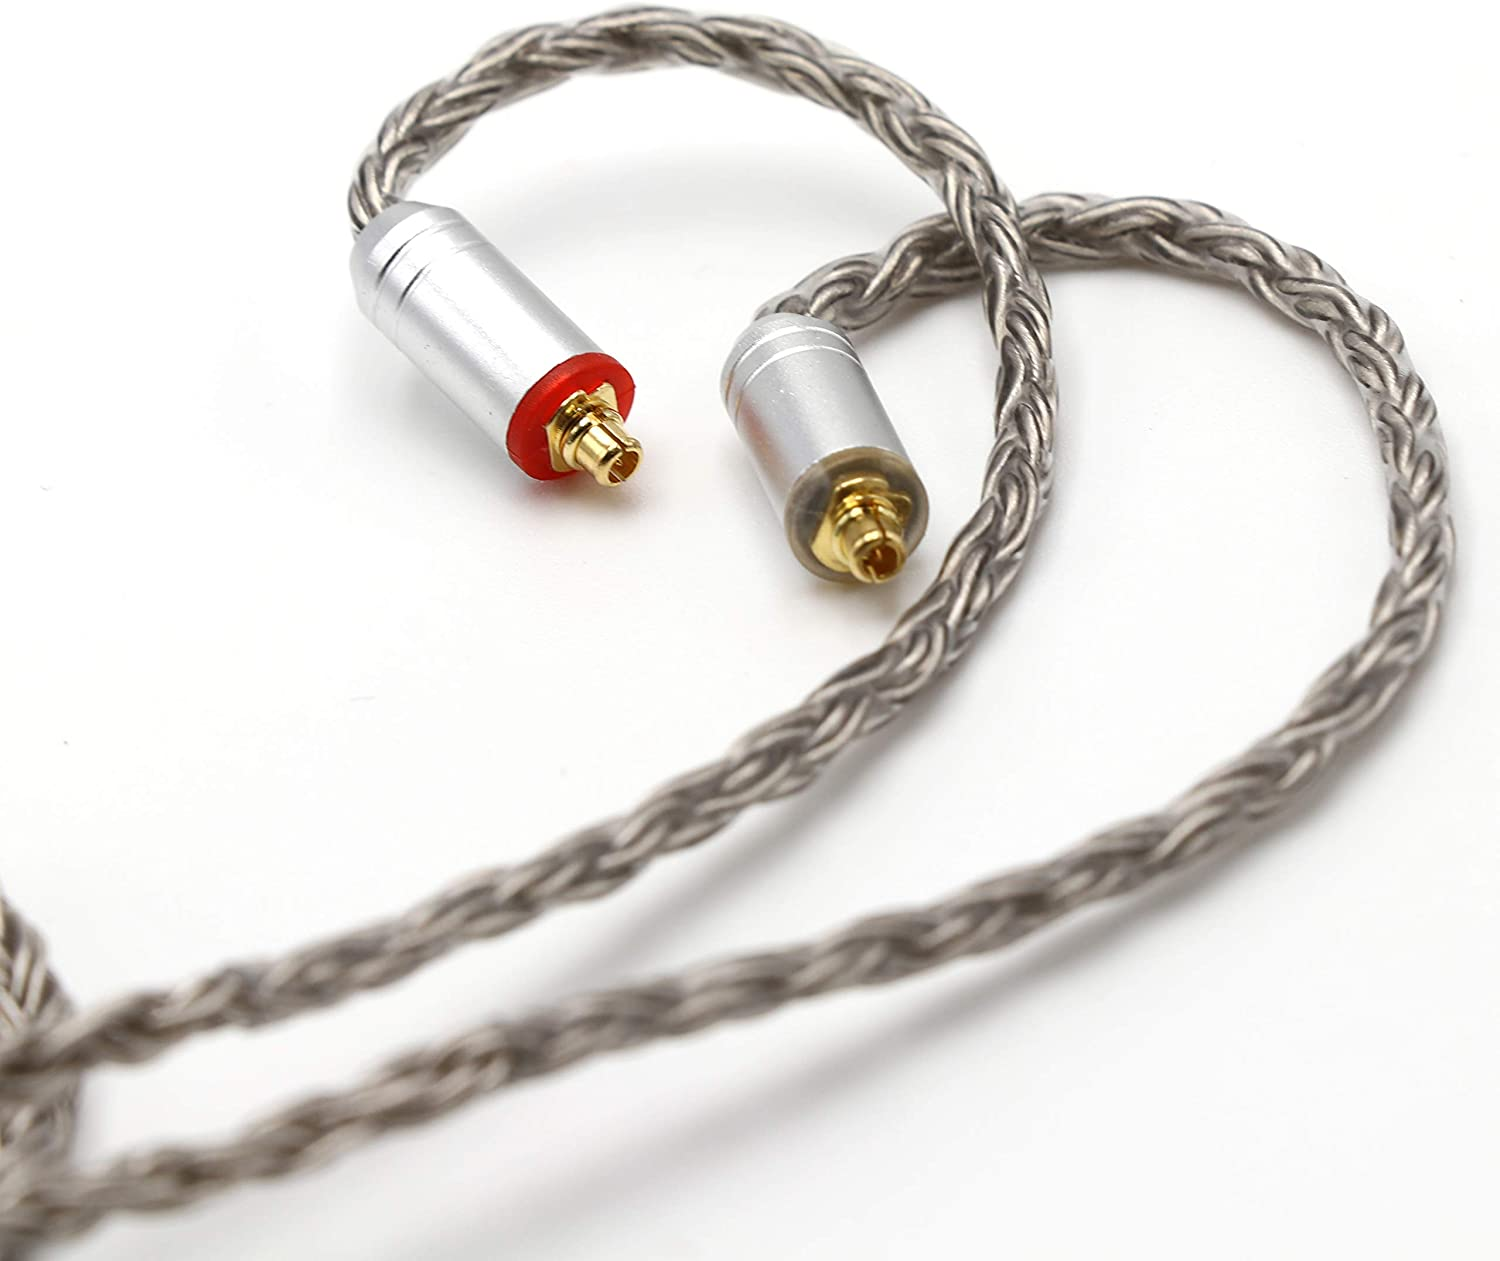 Linsoul Tripowin Zonie 16 Core Silver Plated Cable SPC Earphone Cable 2pin 0.78-2.5mm, Gold